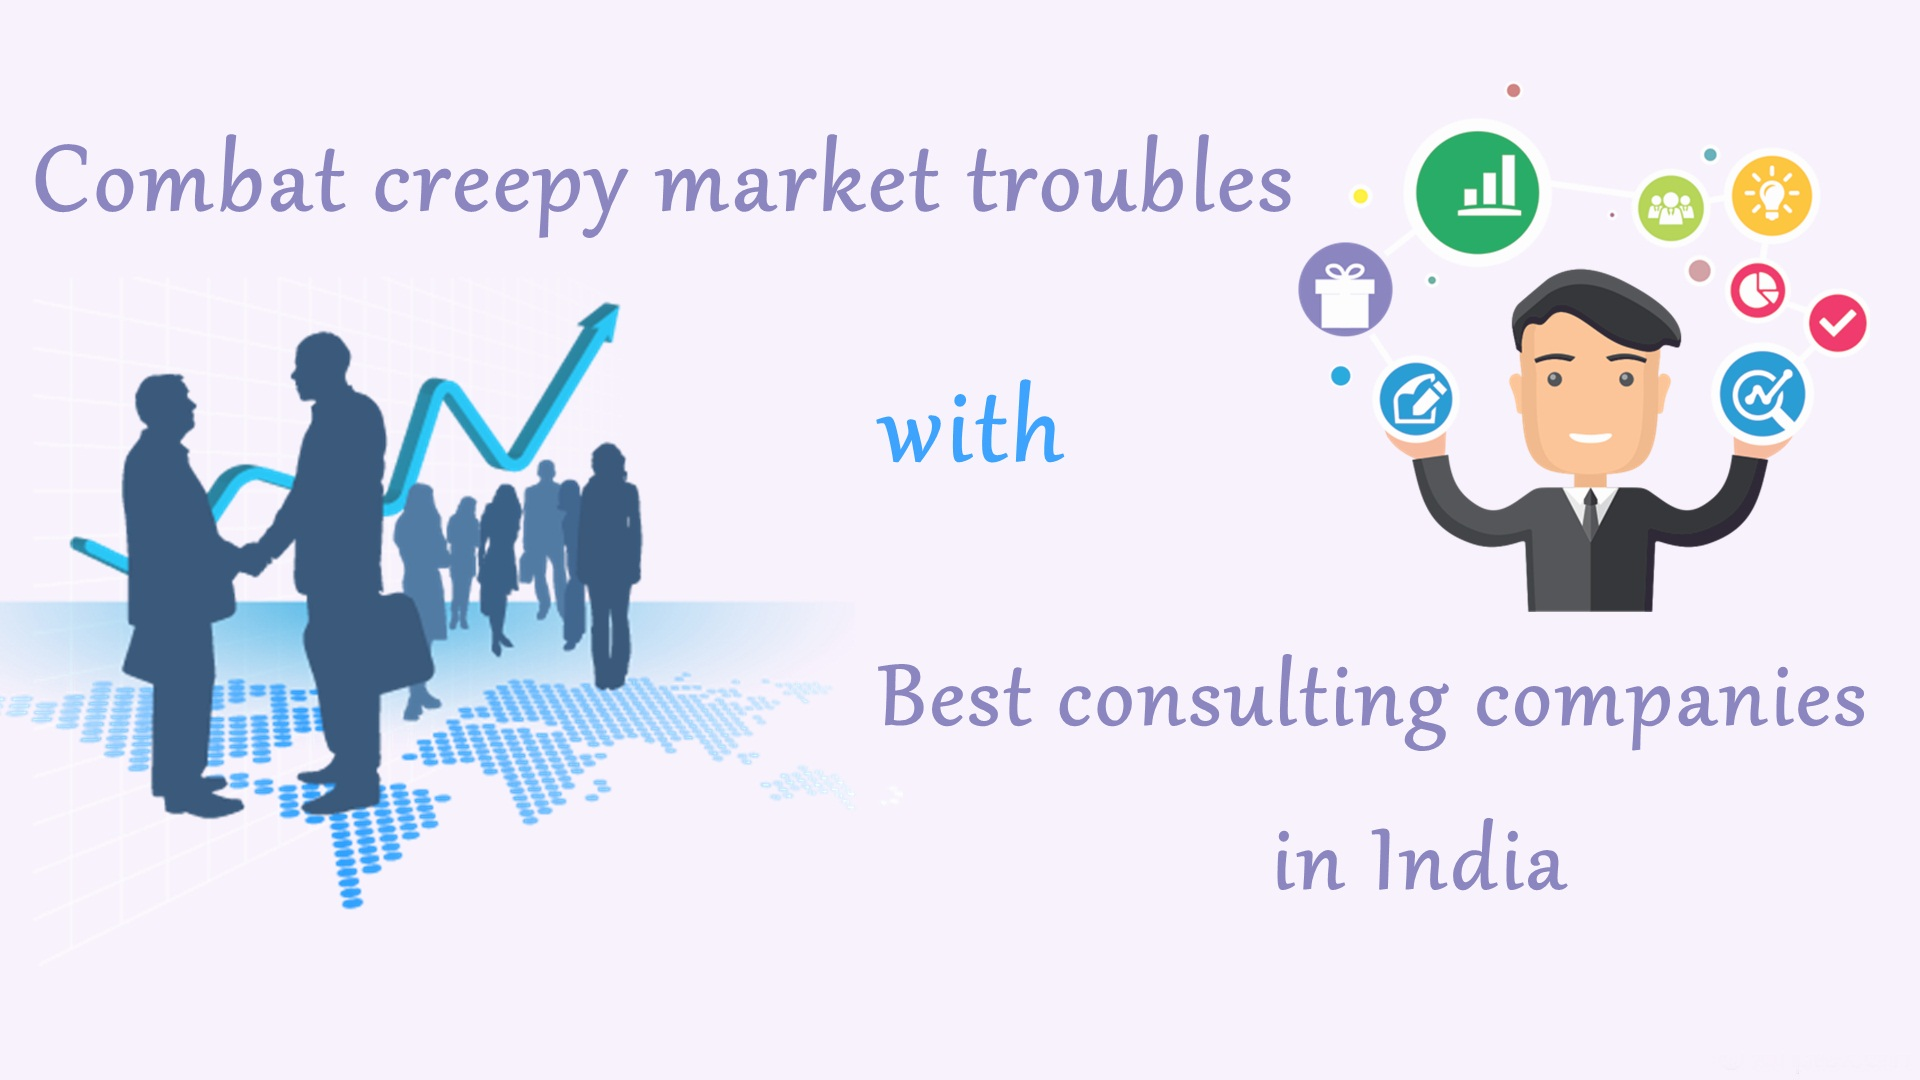 Combat creepy market troubles with Best consulting companies in India.